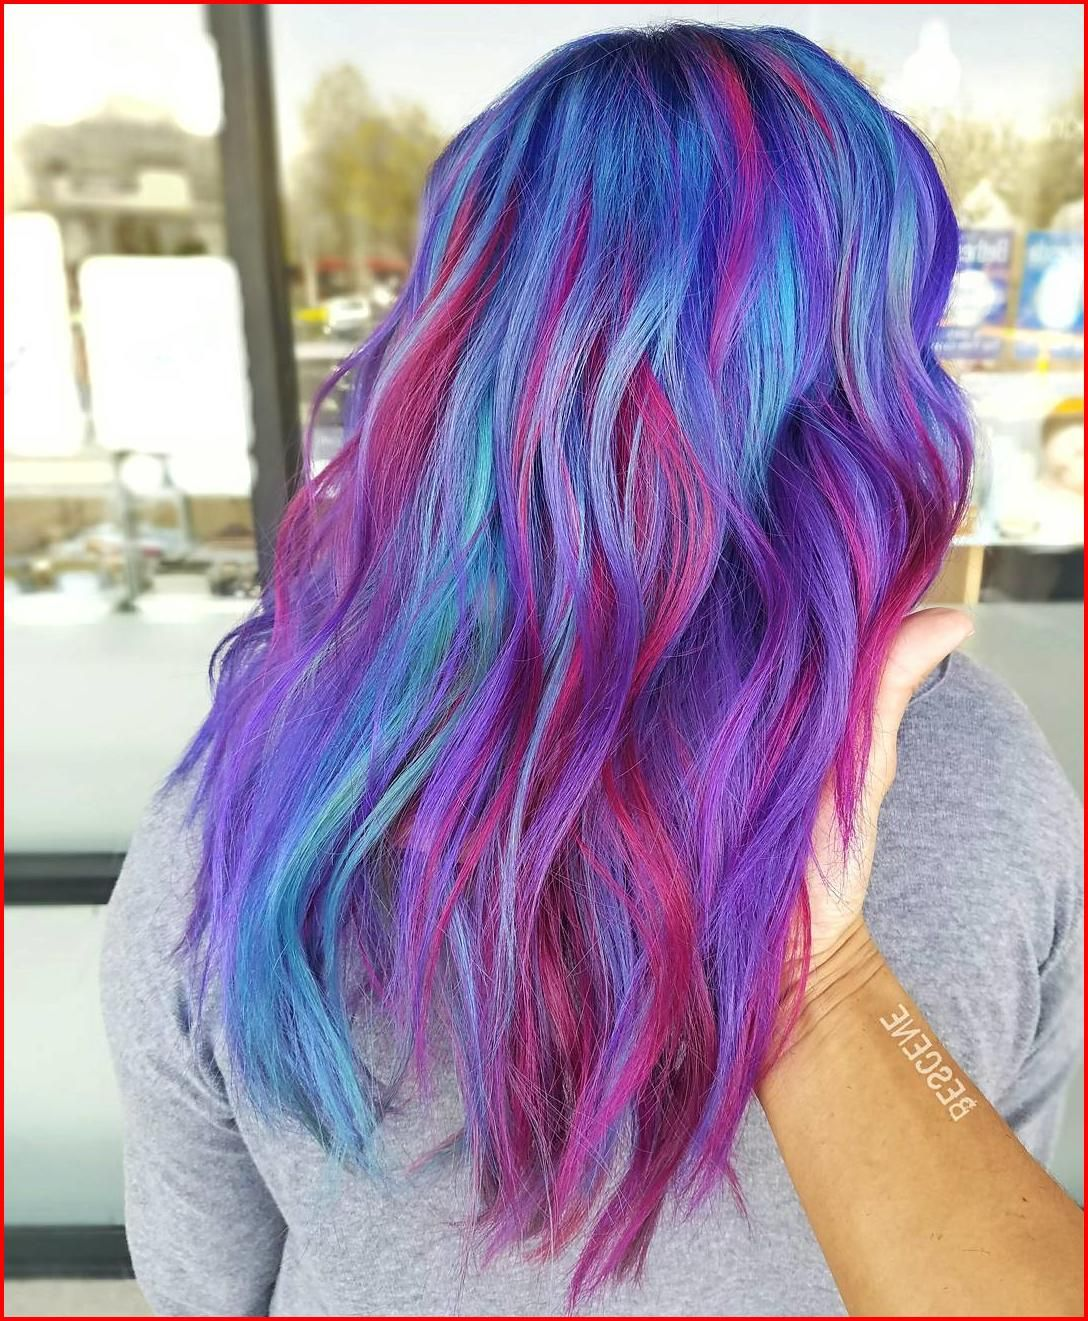 Hairy Color Ideas Blue Purple The Color Mix Always Works To Make Your Appearance Charming And Unique The S In 2020 Hair Color Purple Blue Purple Hair Light Hair Color